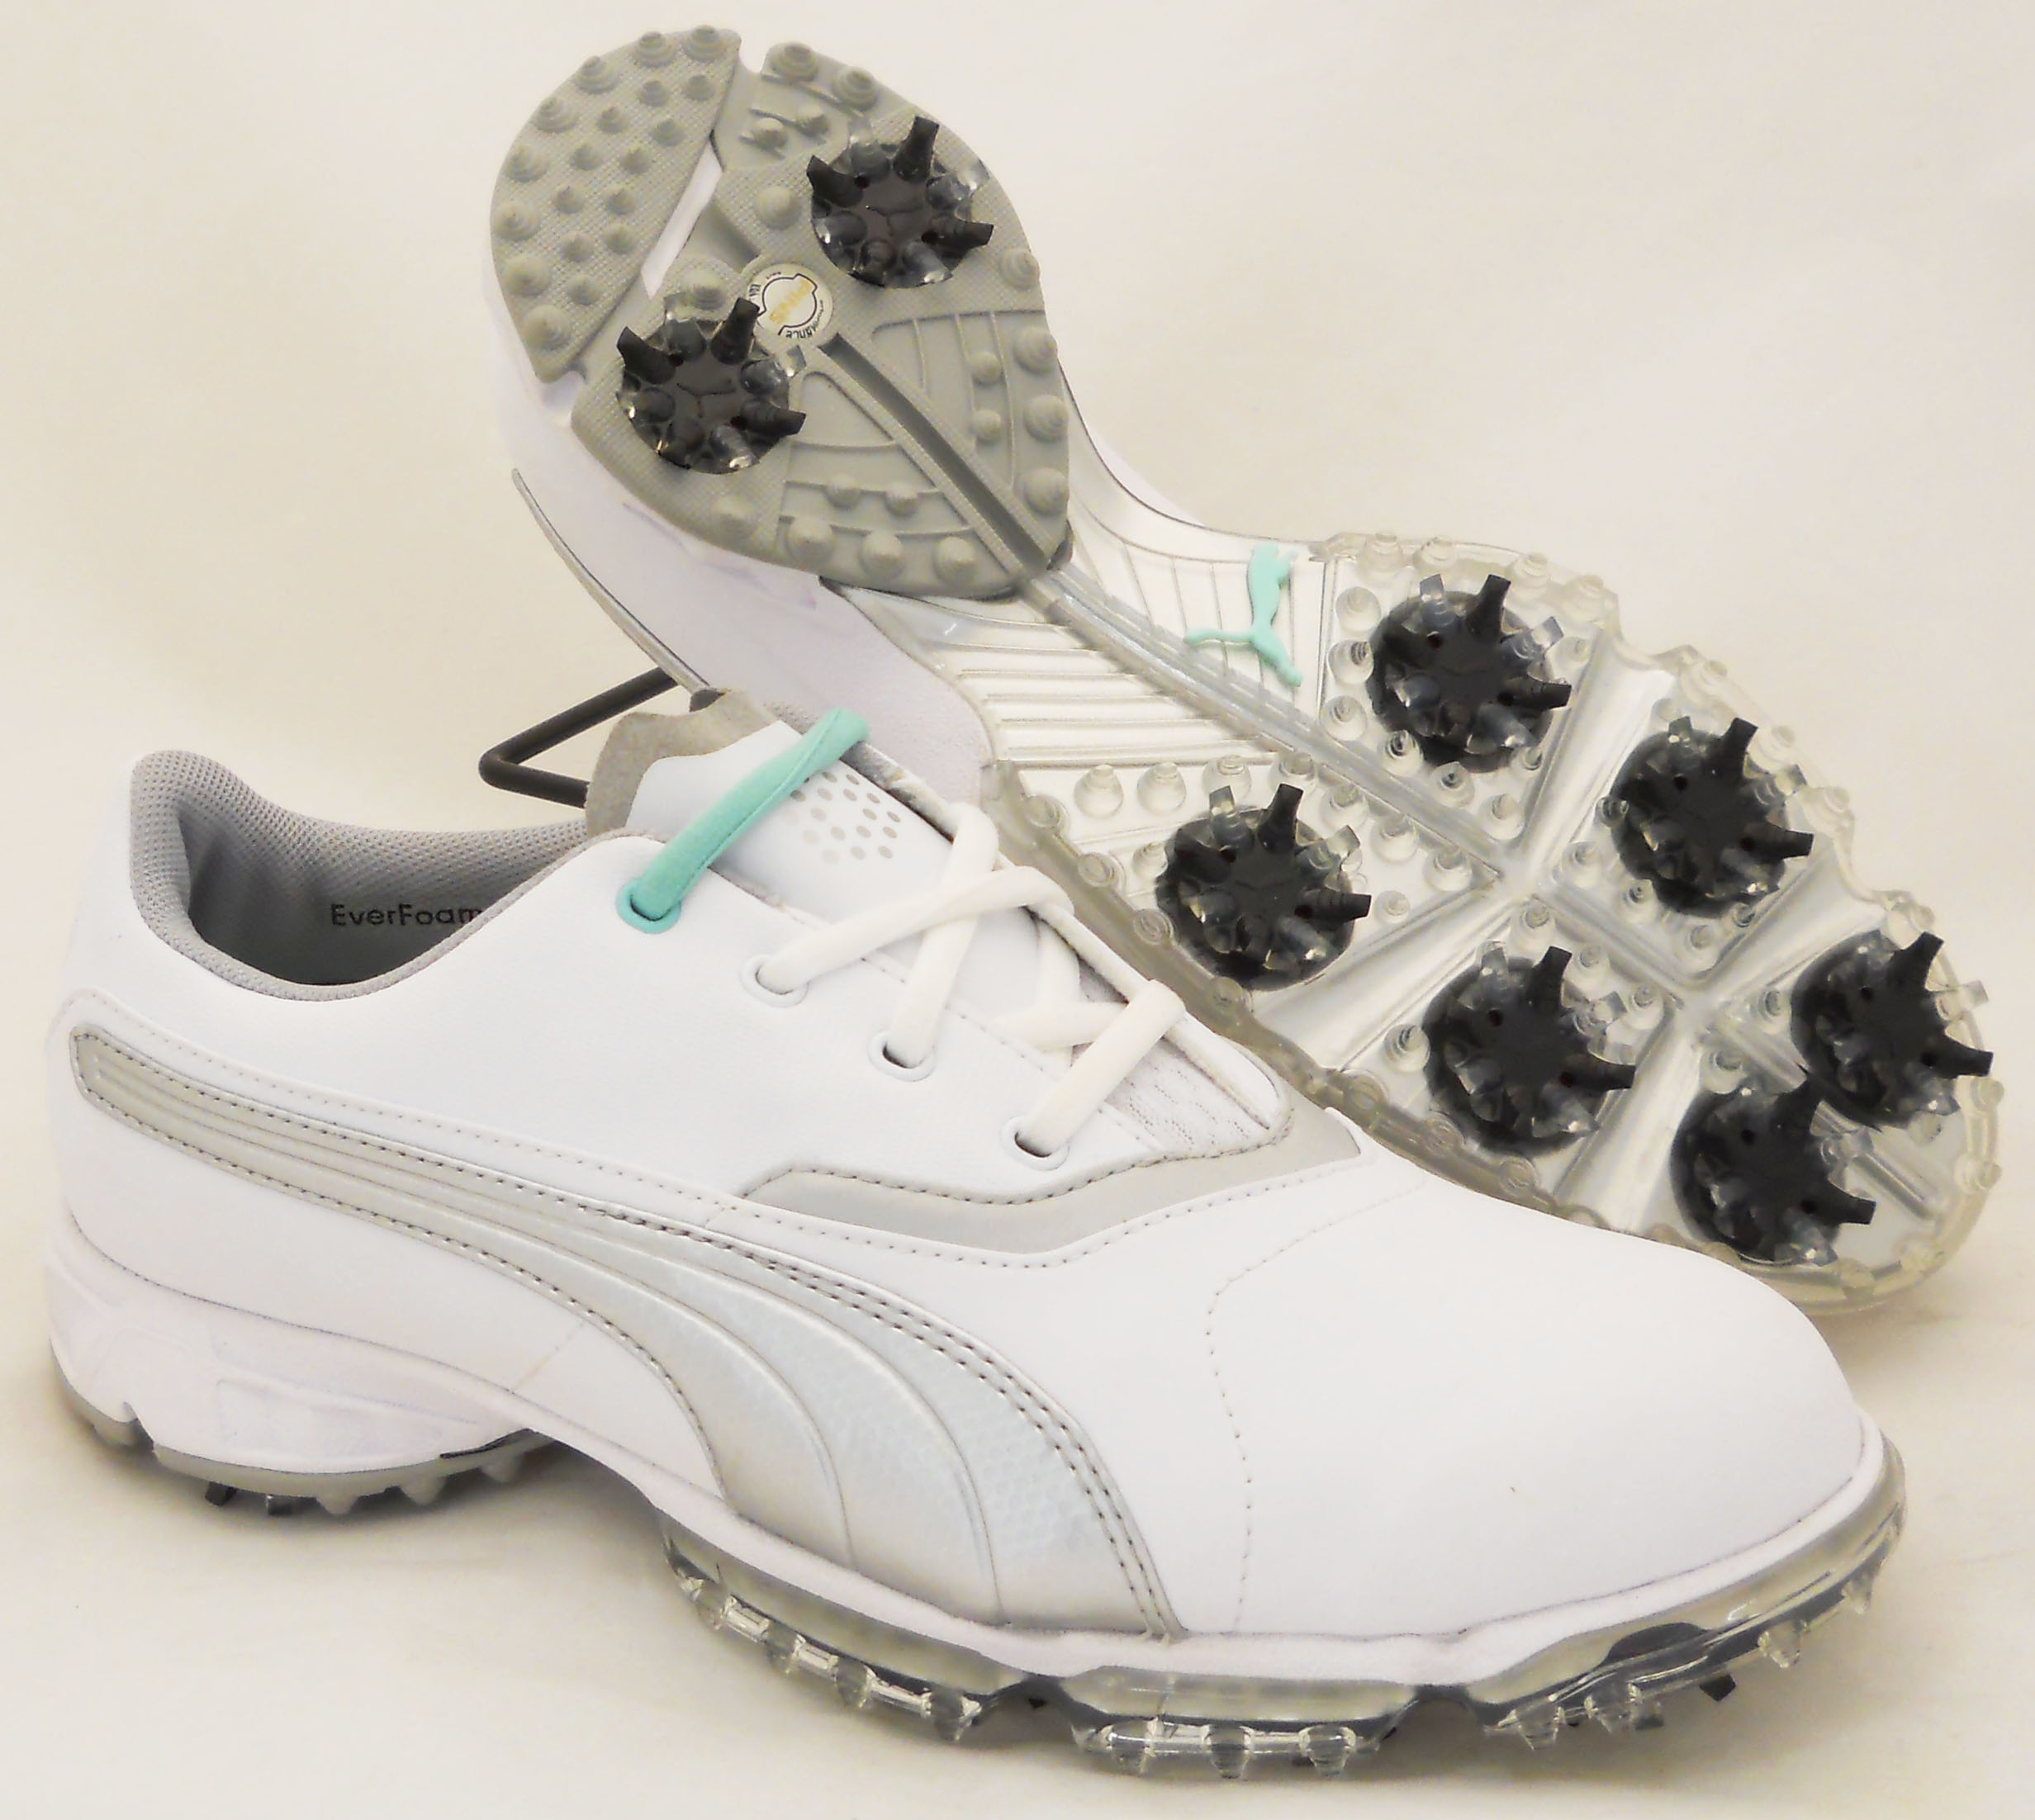 NEW Womens Puma BIOPRO - Golf Shoes White/Silver Metallic - BIOPRO Choose Size! 52e5e6